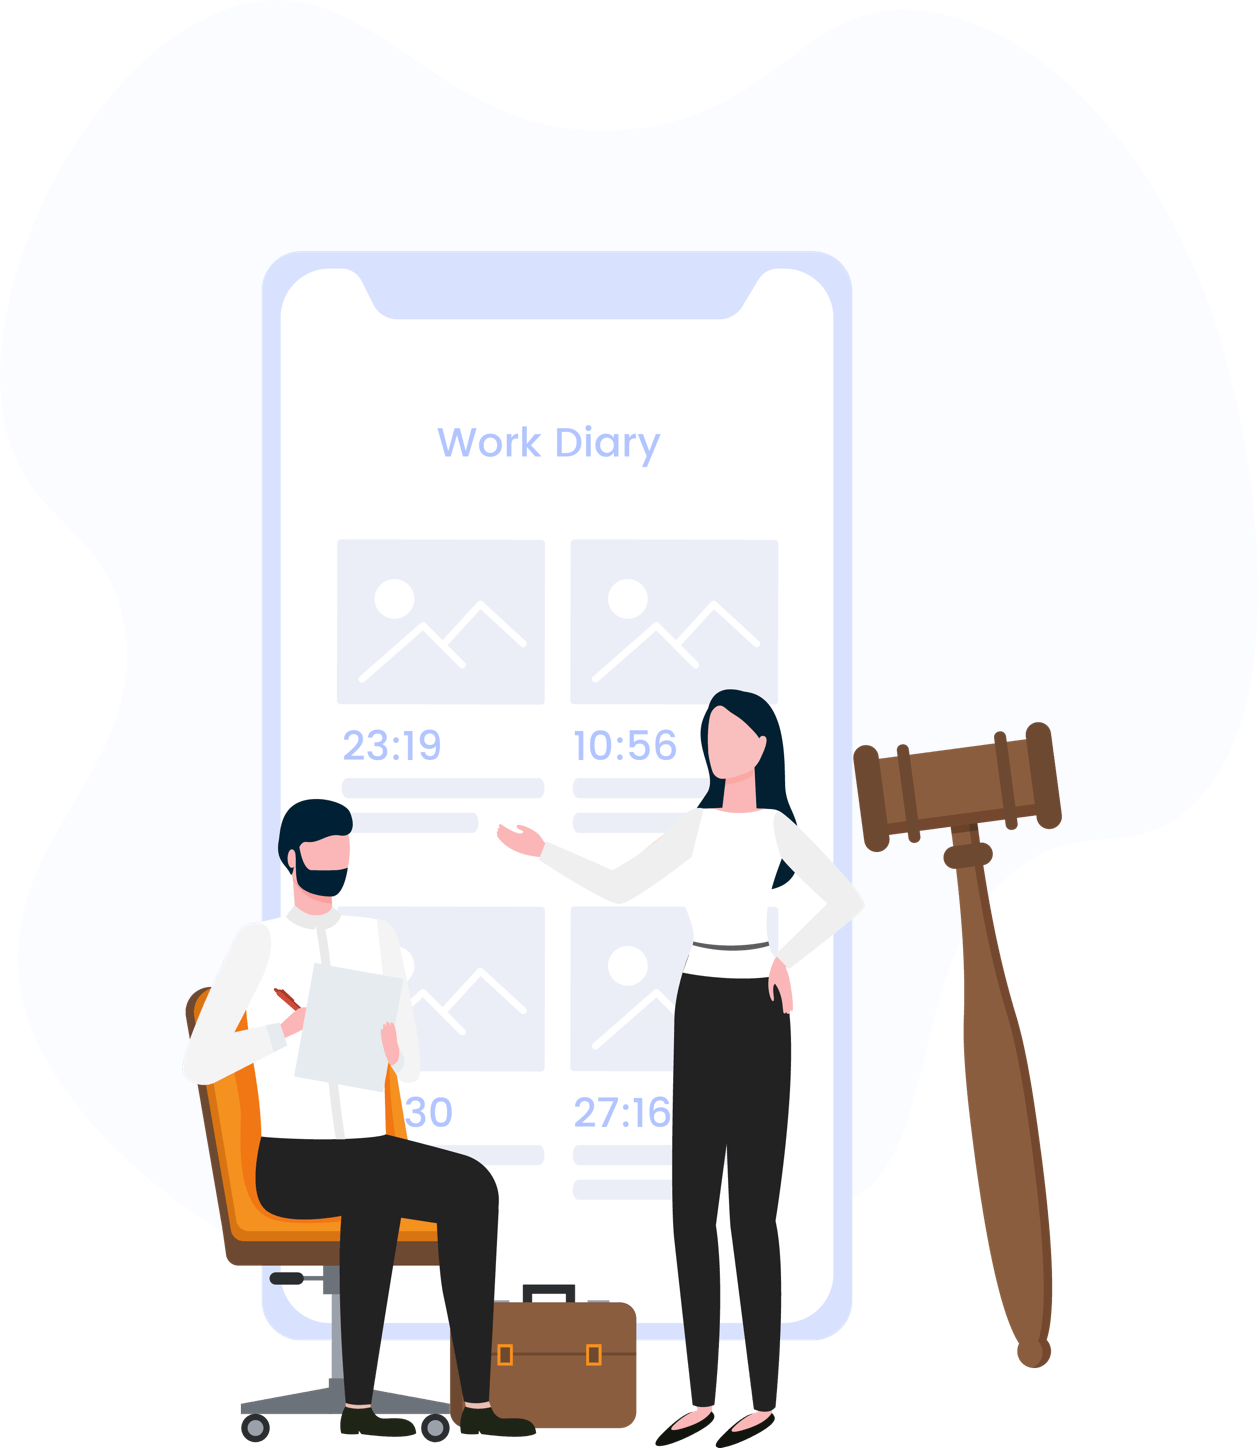 Work Diary for legal industry